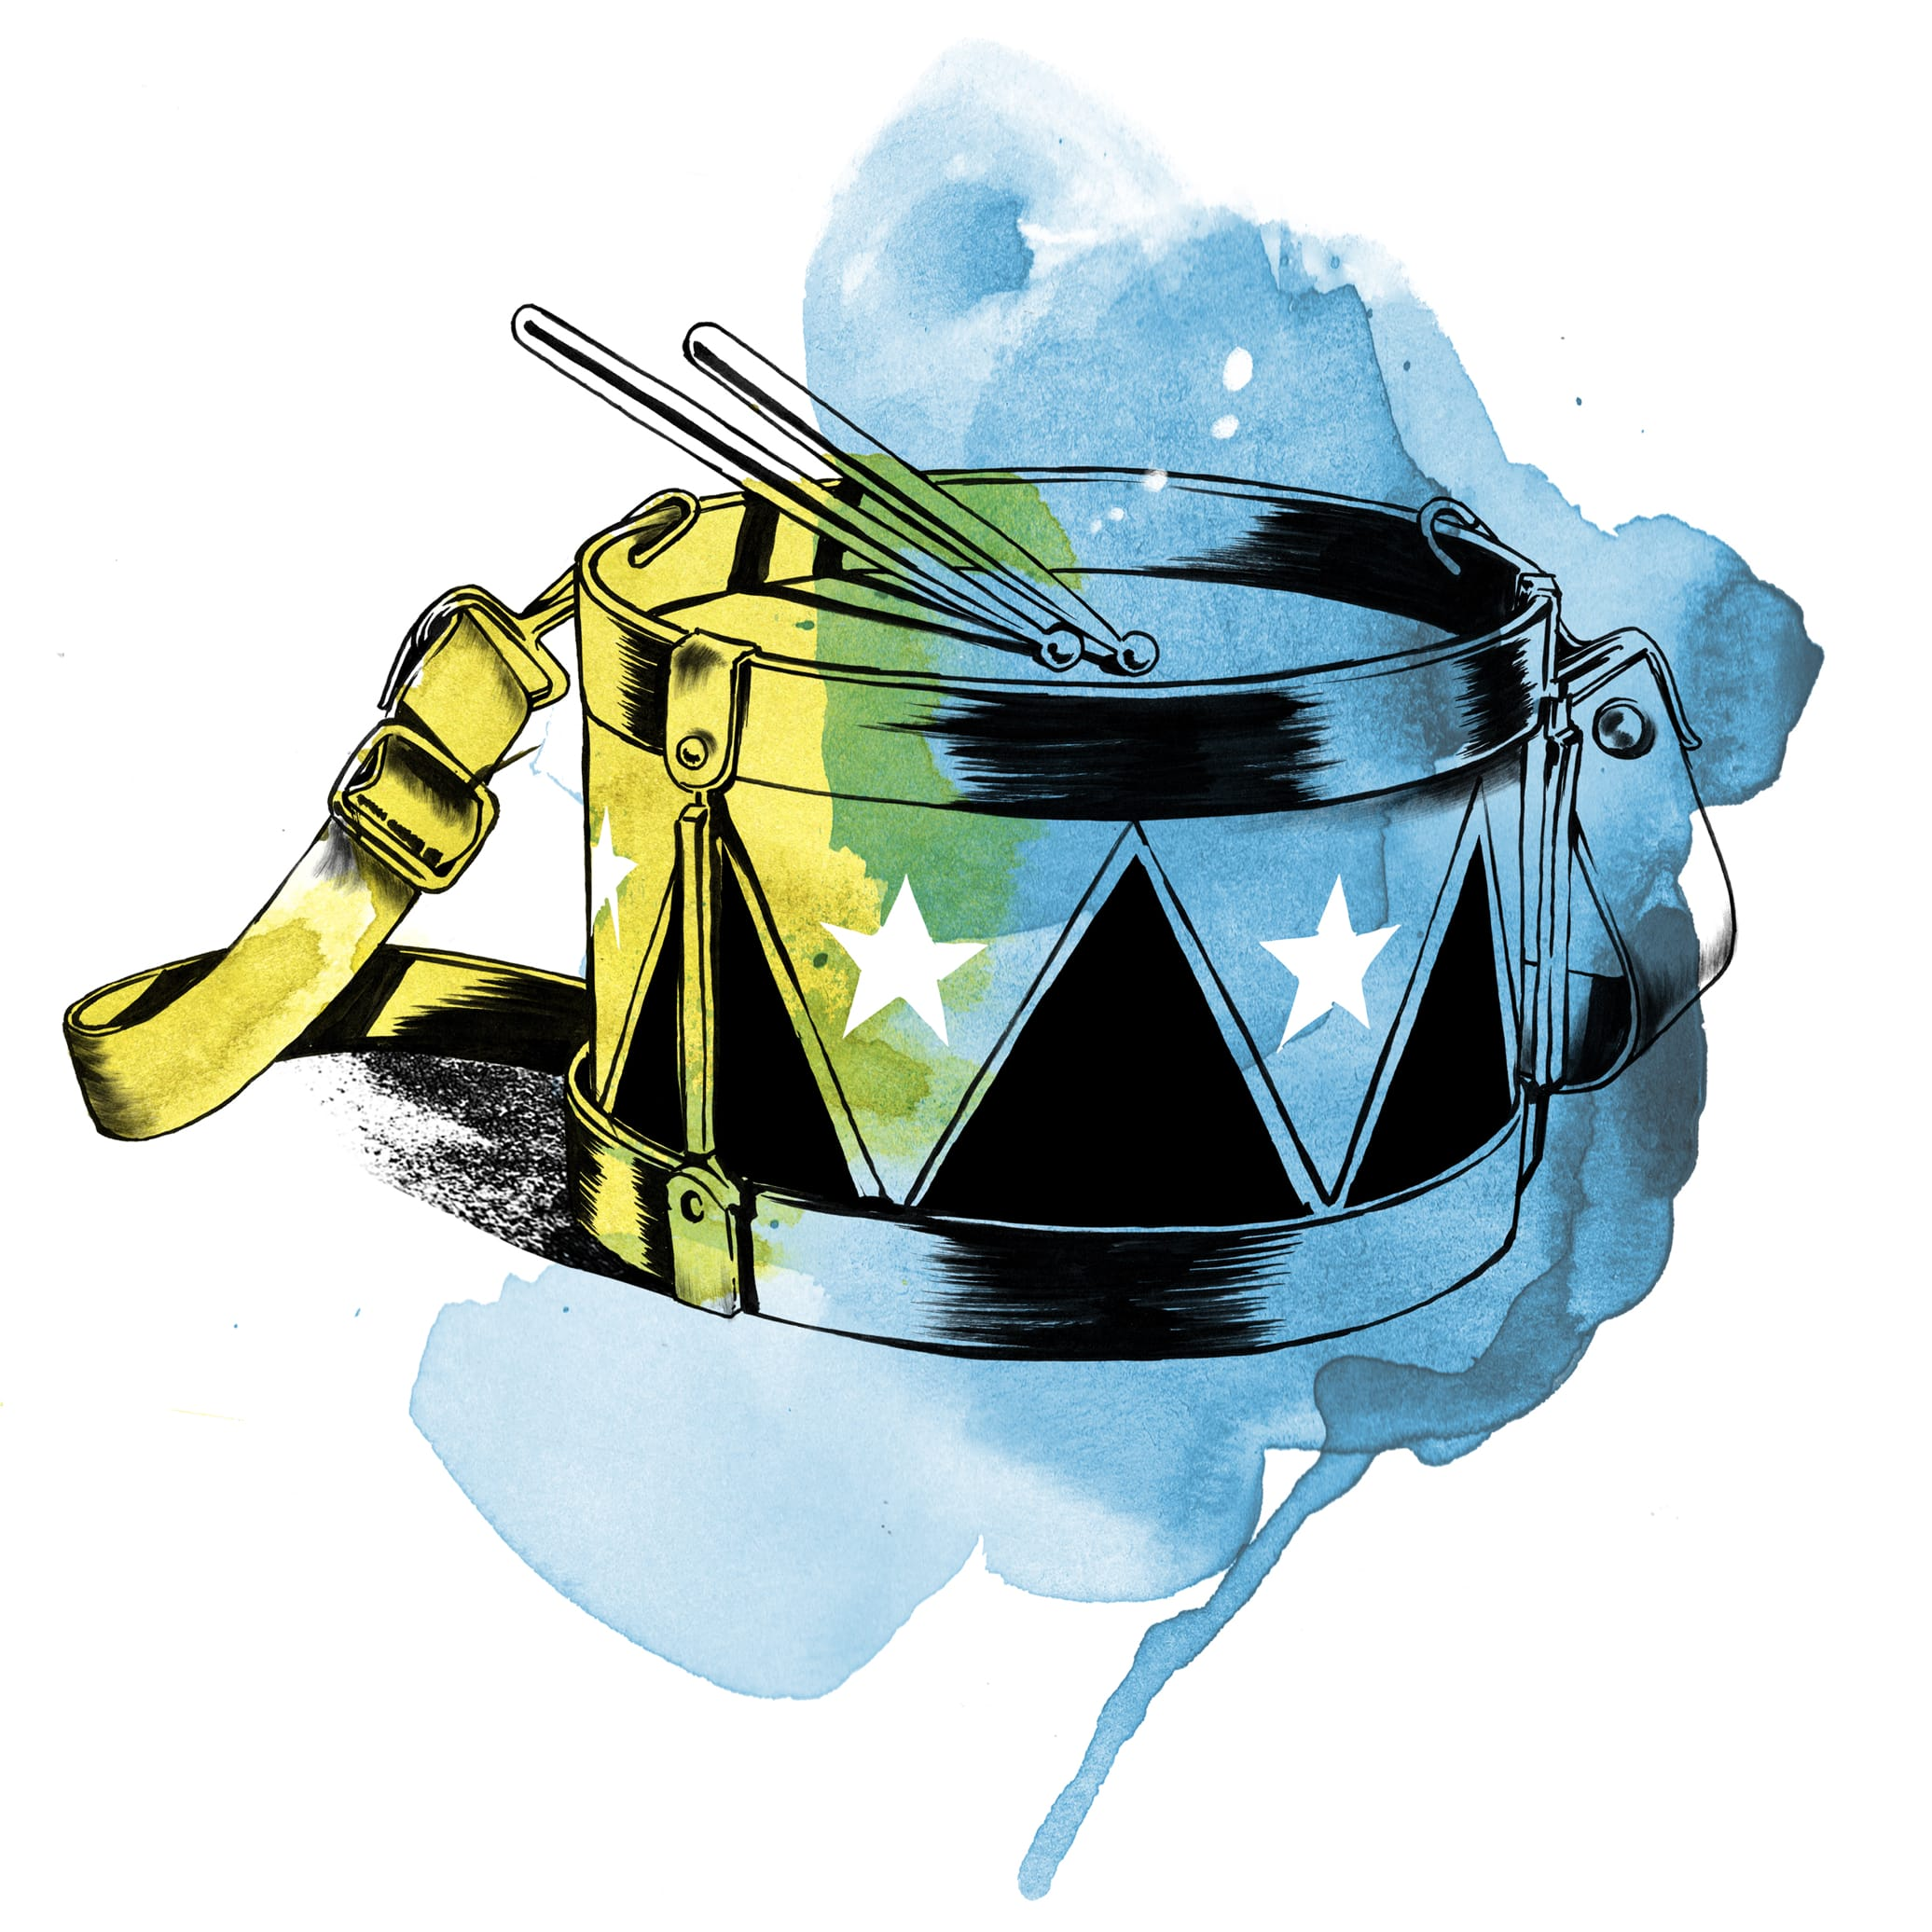 Watercolor illustration of the Little Drummer Boy's drum. Such playing from Regé-Jean!